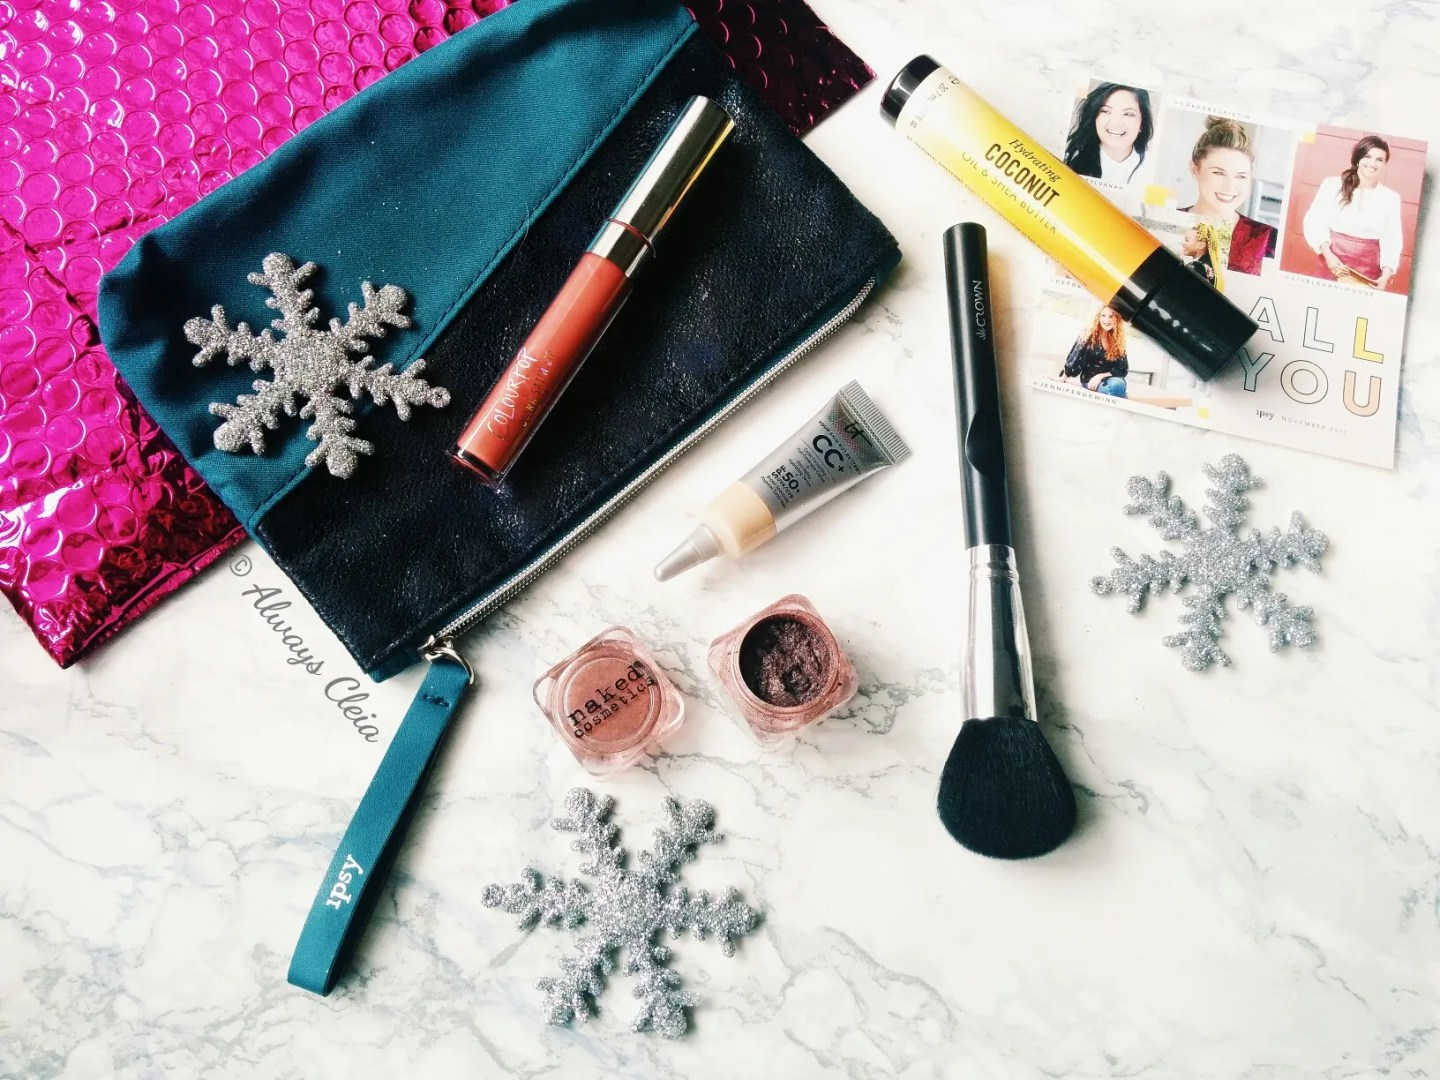 Ipsy November 2017 Glam Bag Flatlay